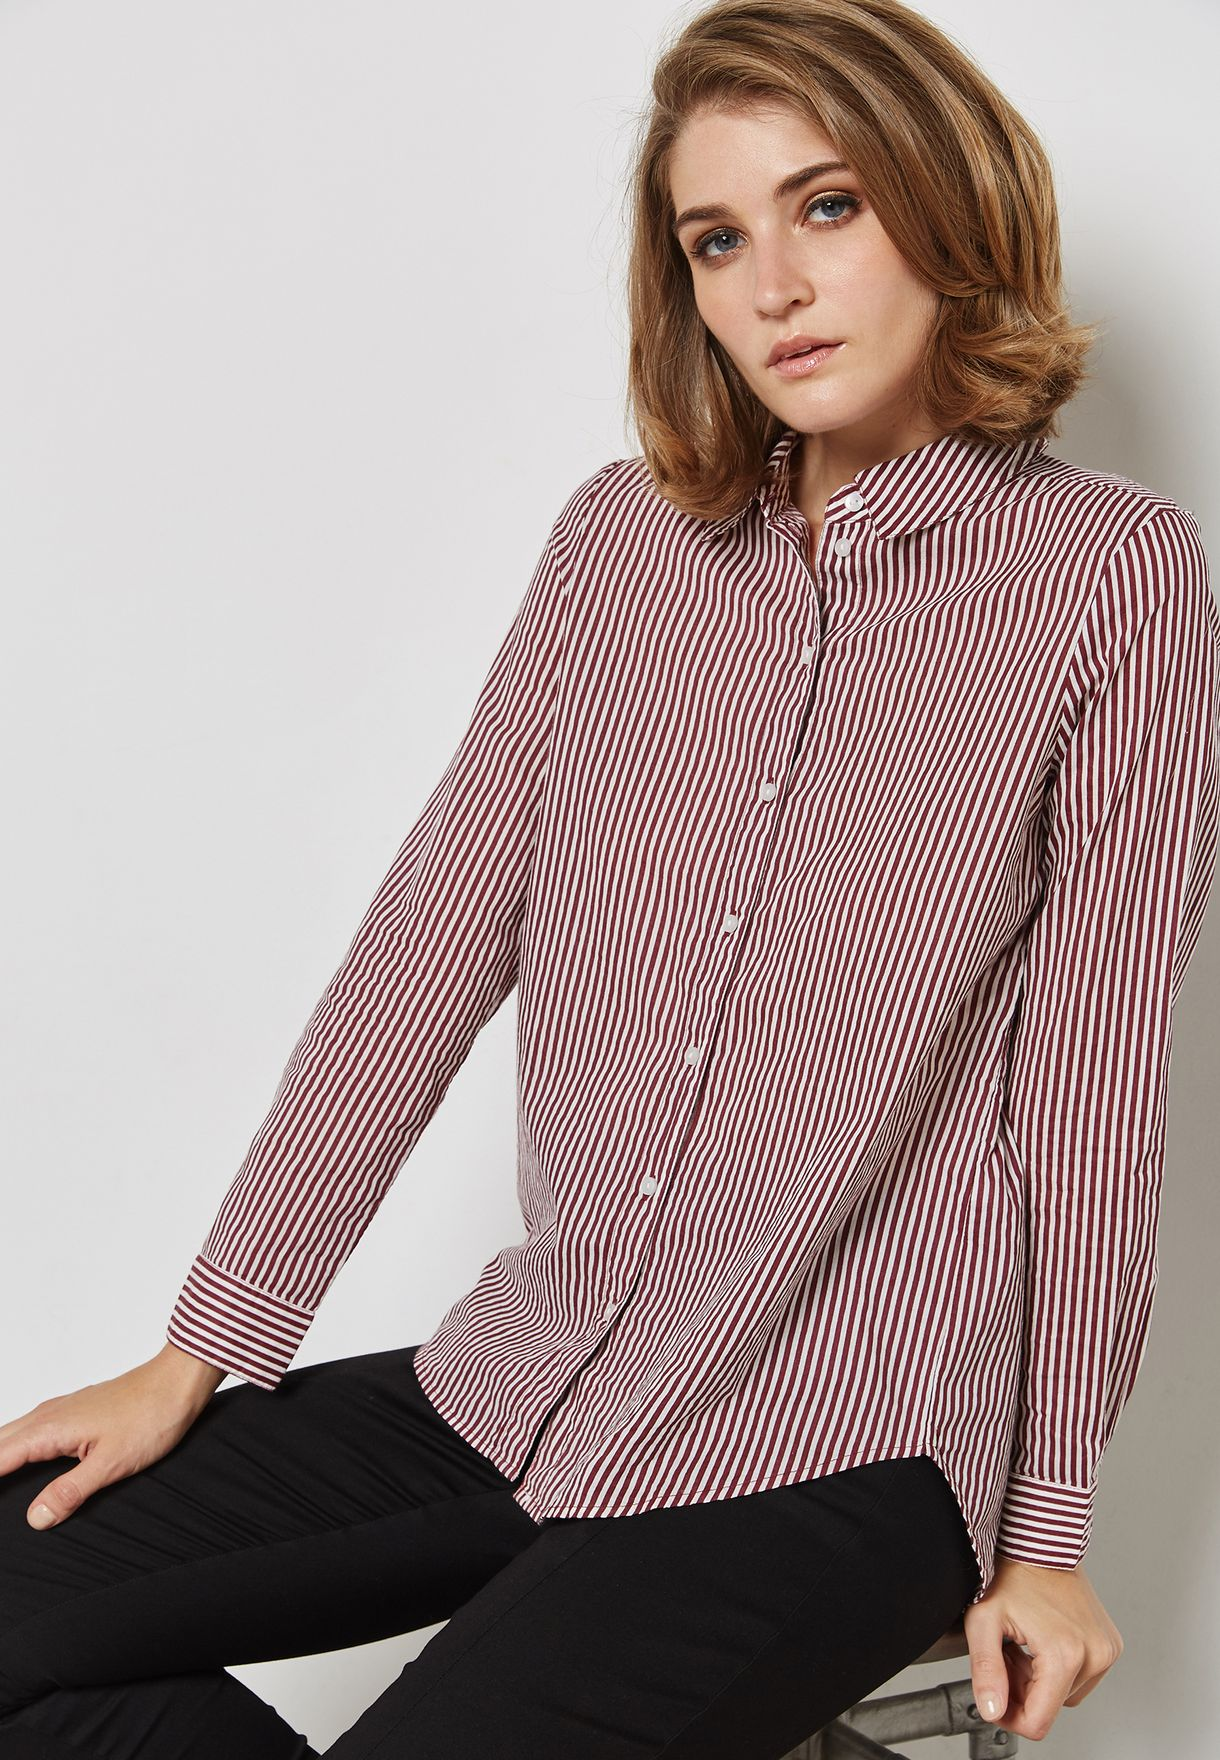 0db34f0dfa Shop Vero Moda stripes Striped Shirt 10185540 for Women in Bahrain ...